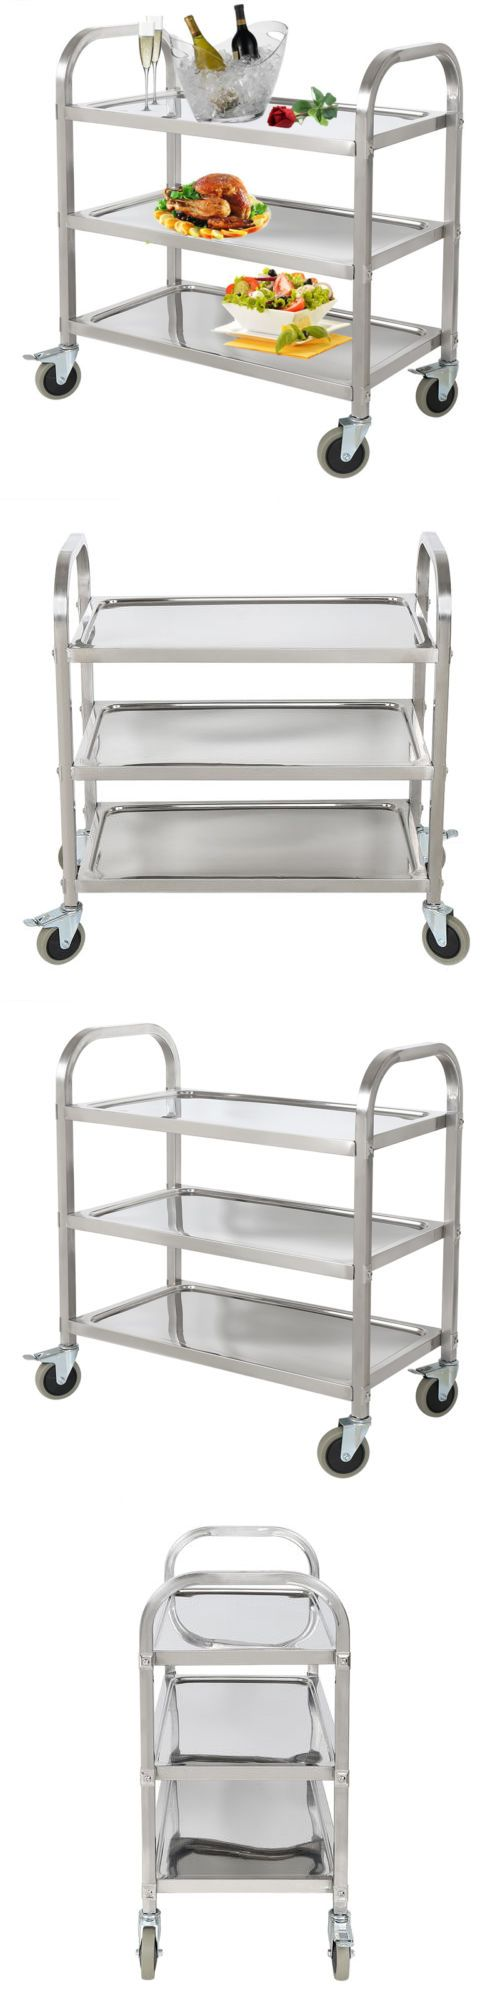 the 25 best kitchen utility cart ideas on pinterest utility kitchen islands kitchen carts 115753 commercial 3 shelf stainless steel restaurant utility cart kitchen